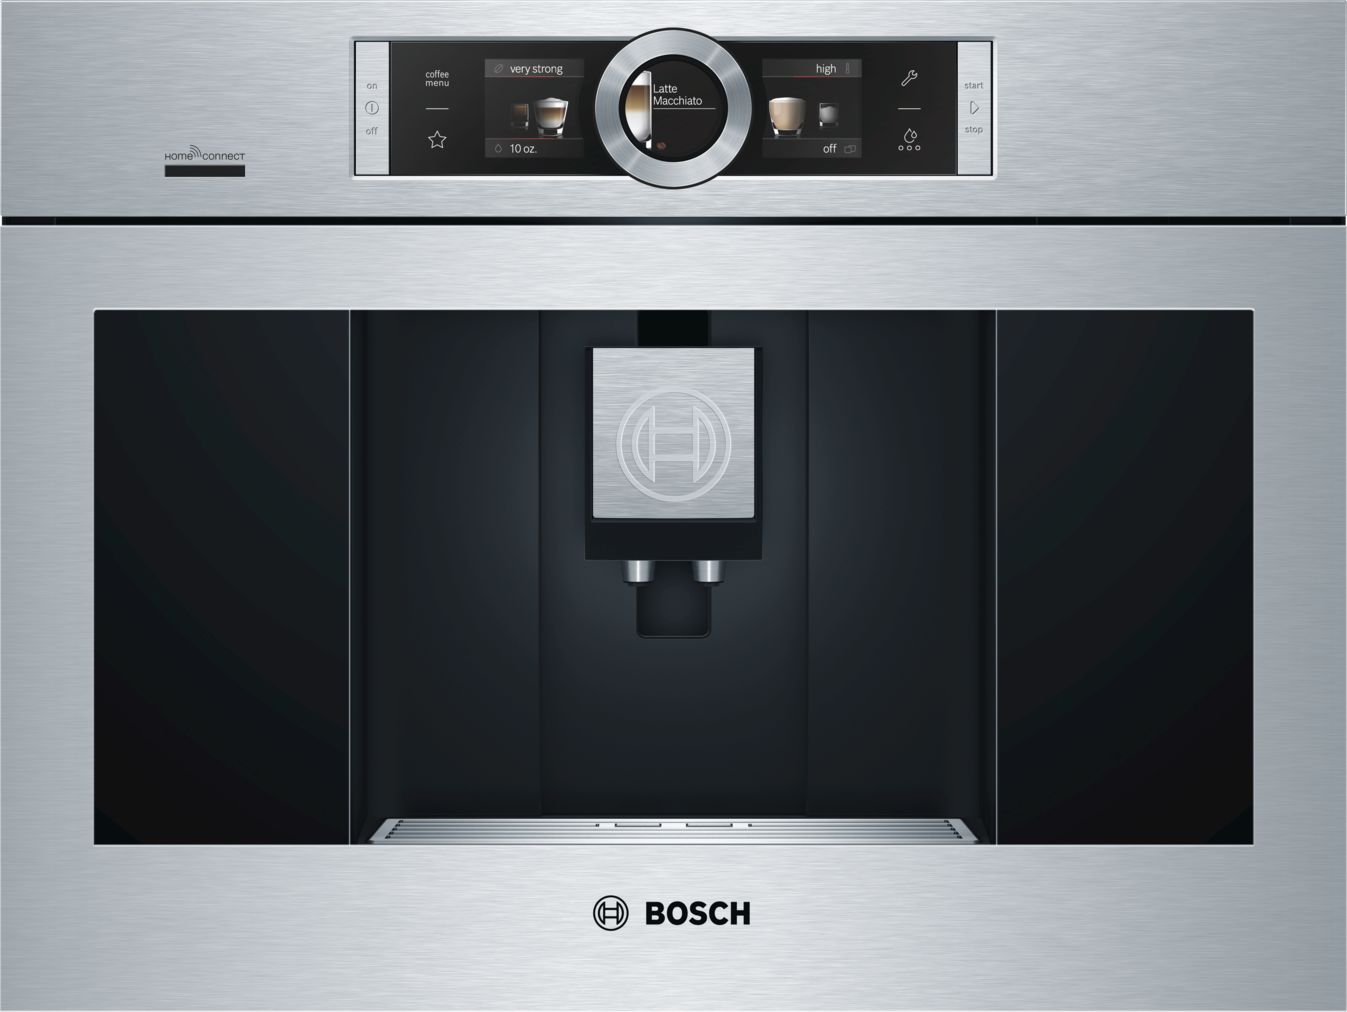 "Bosch 800 Series, 24"" Built-in Coffee Machine with Home Connect, BCM8450UC, Stainless Steel"